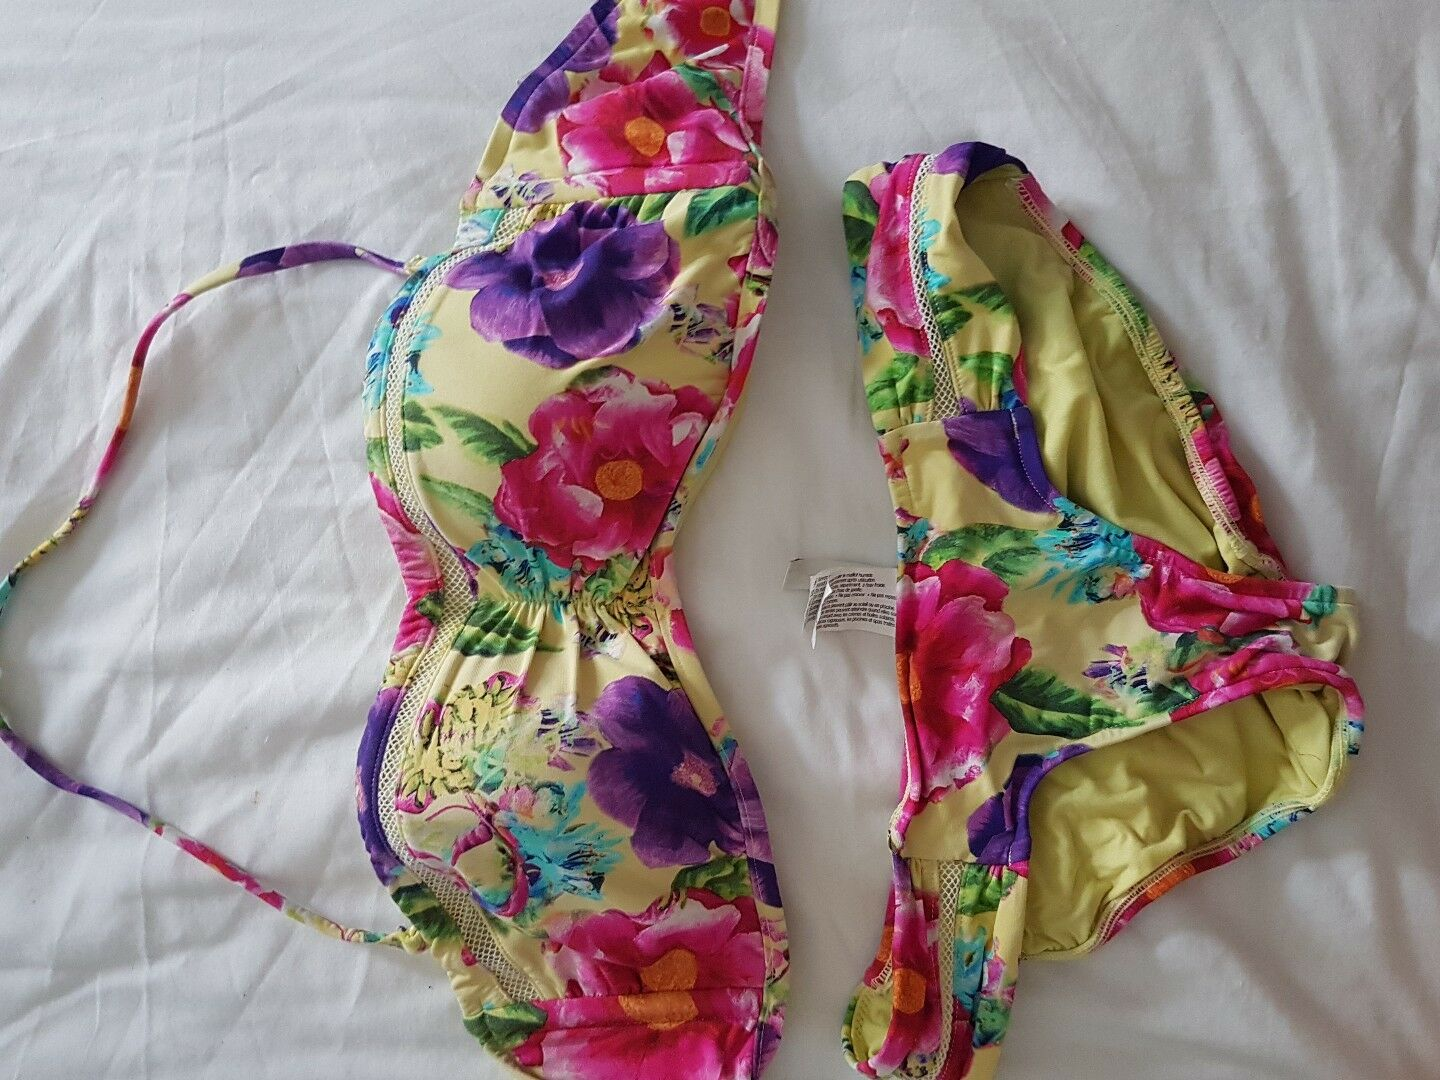 Sea folly yellow bikini bra size 12 brief size 8 worn once only